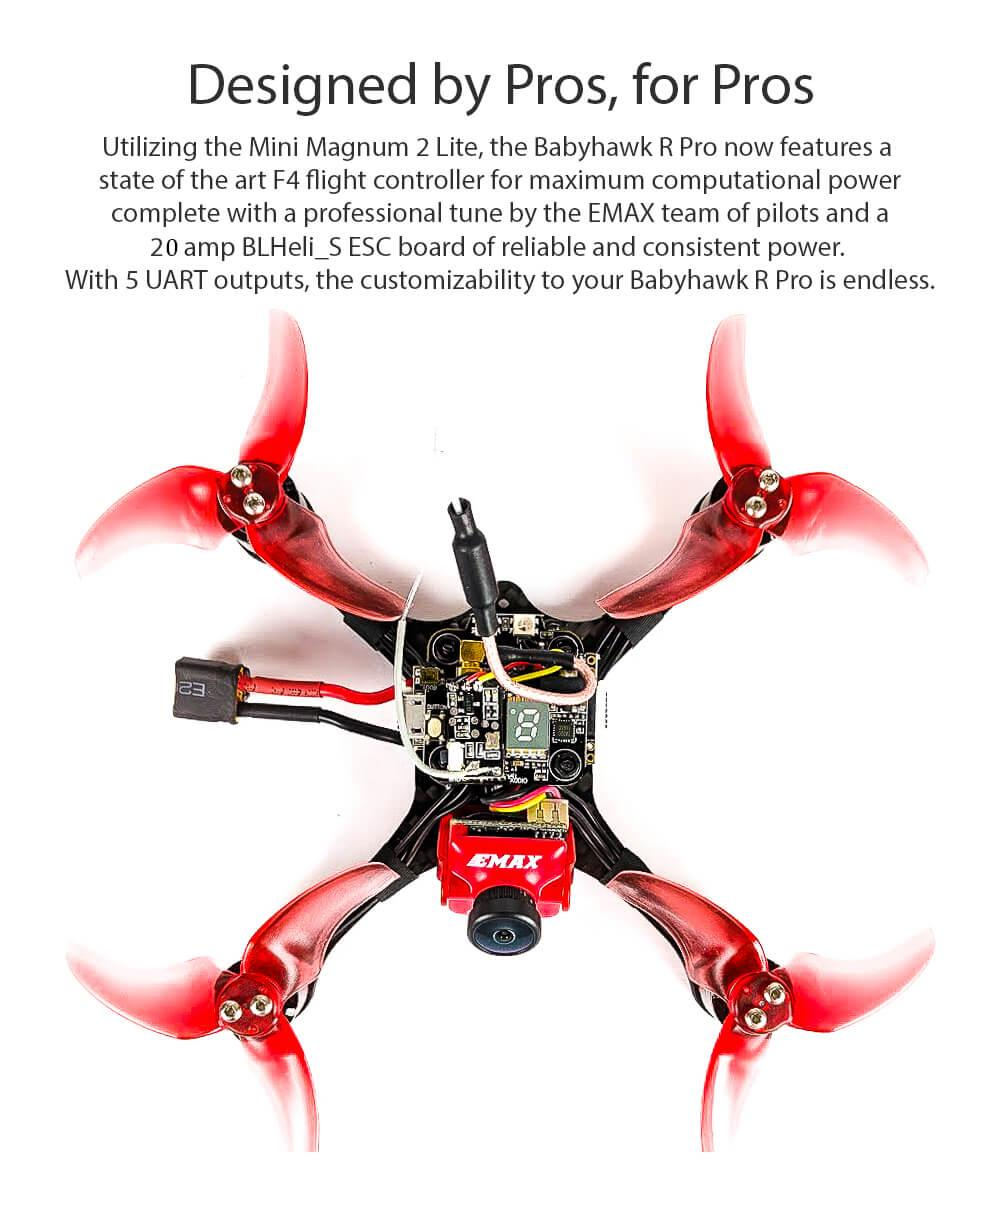 Specs and features of the babyhawk r pro